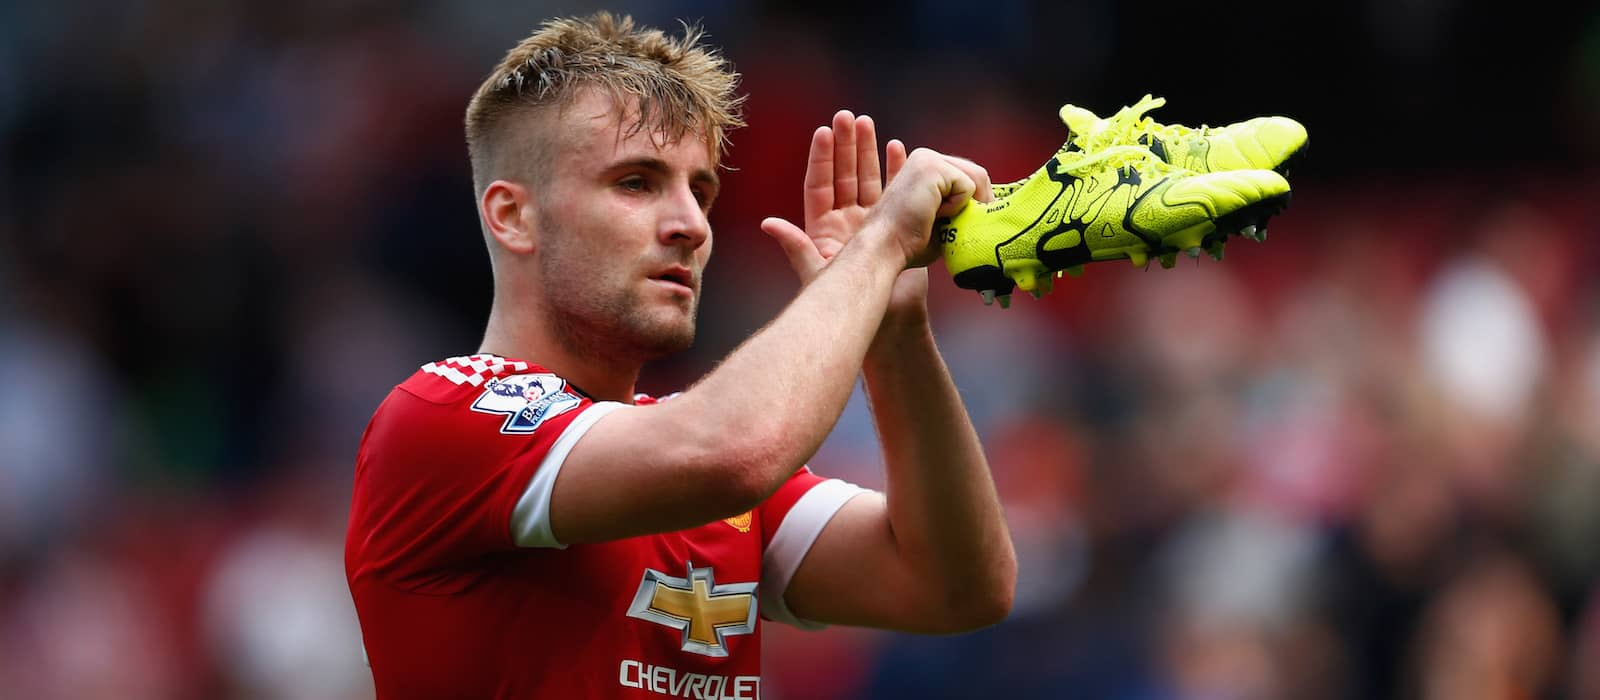 Luke Shaw injury update: My leg feels great